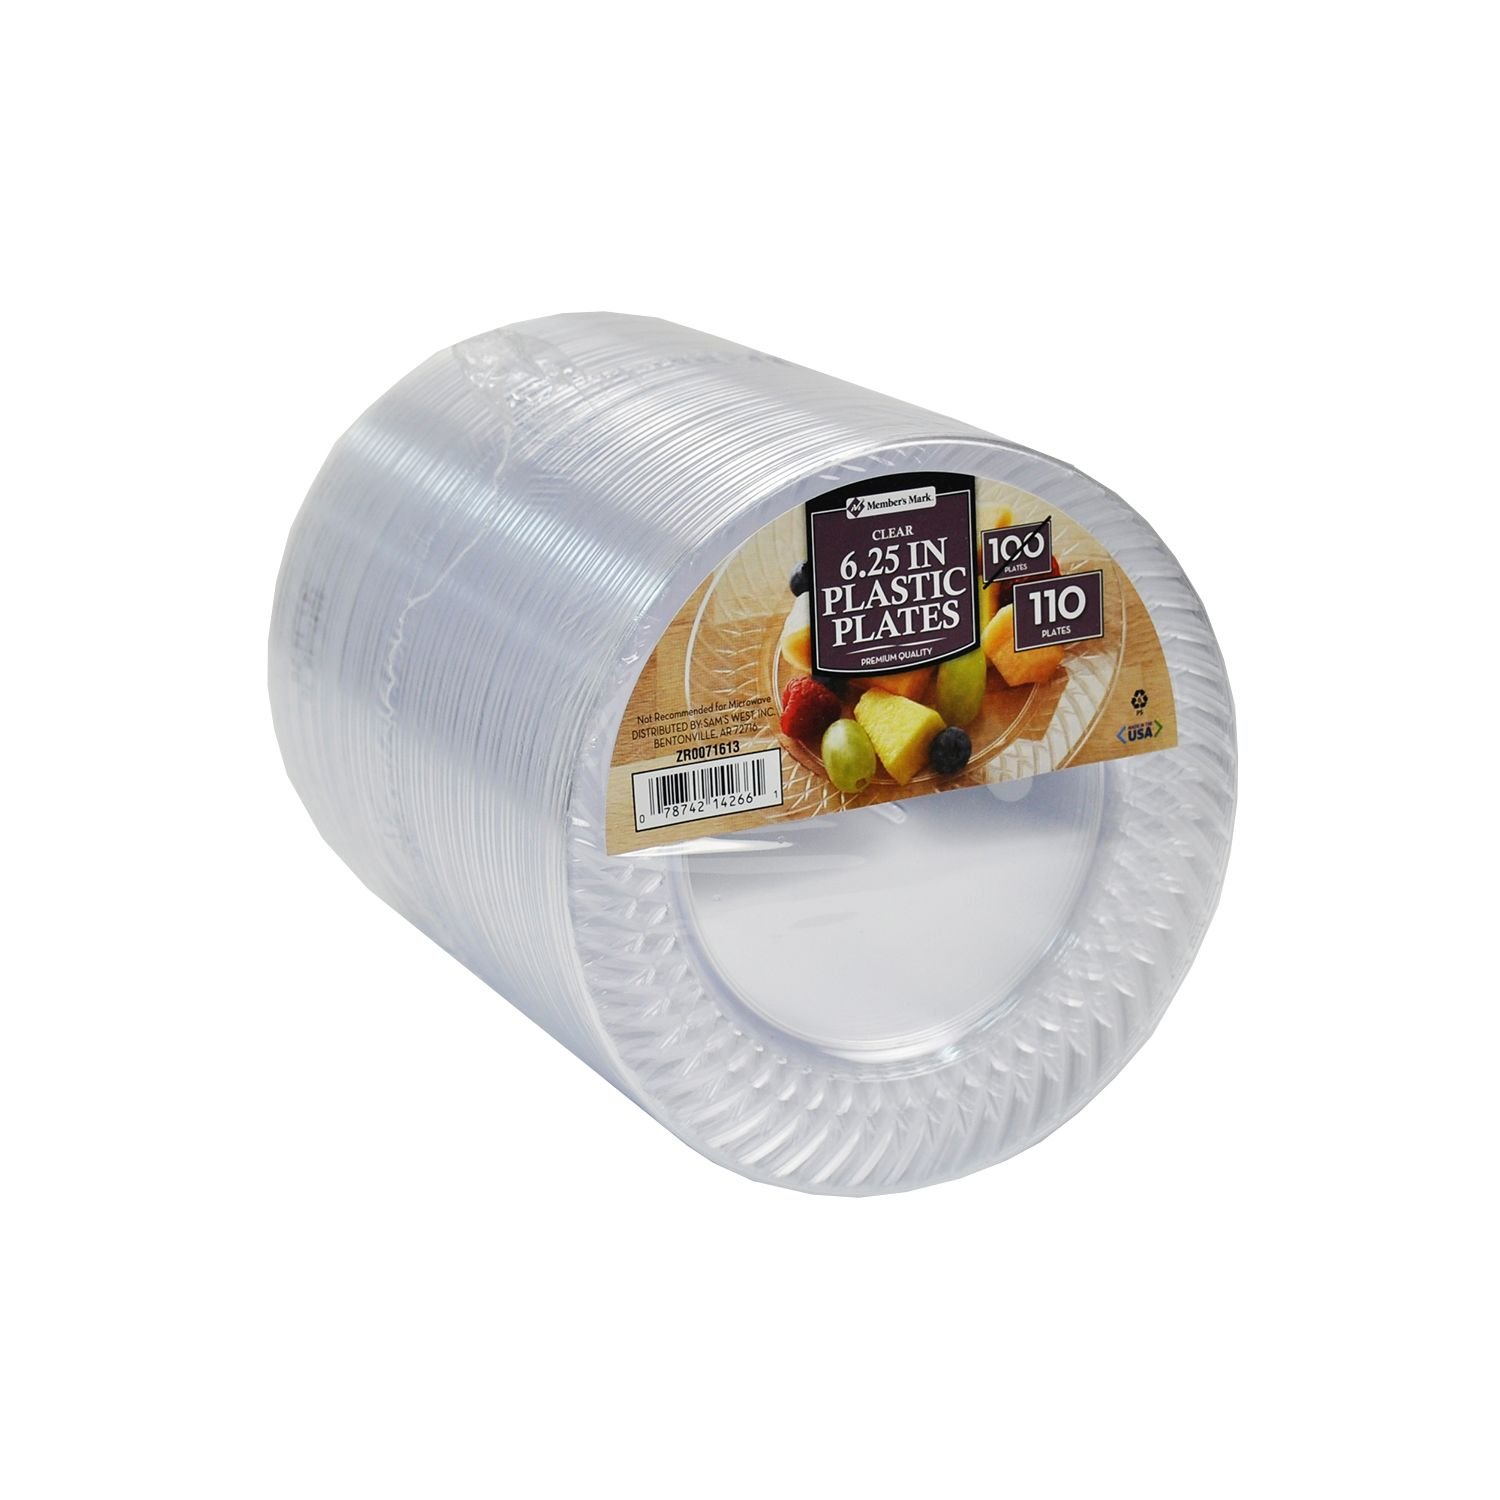 Members Mark Clear Plastic Plates, 6.25 Inch, 5Pack of 110 ct